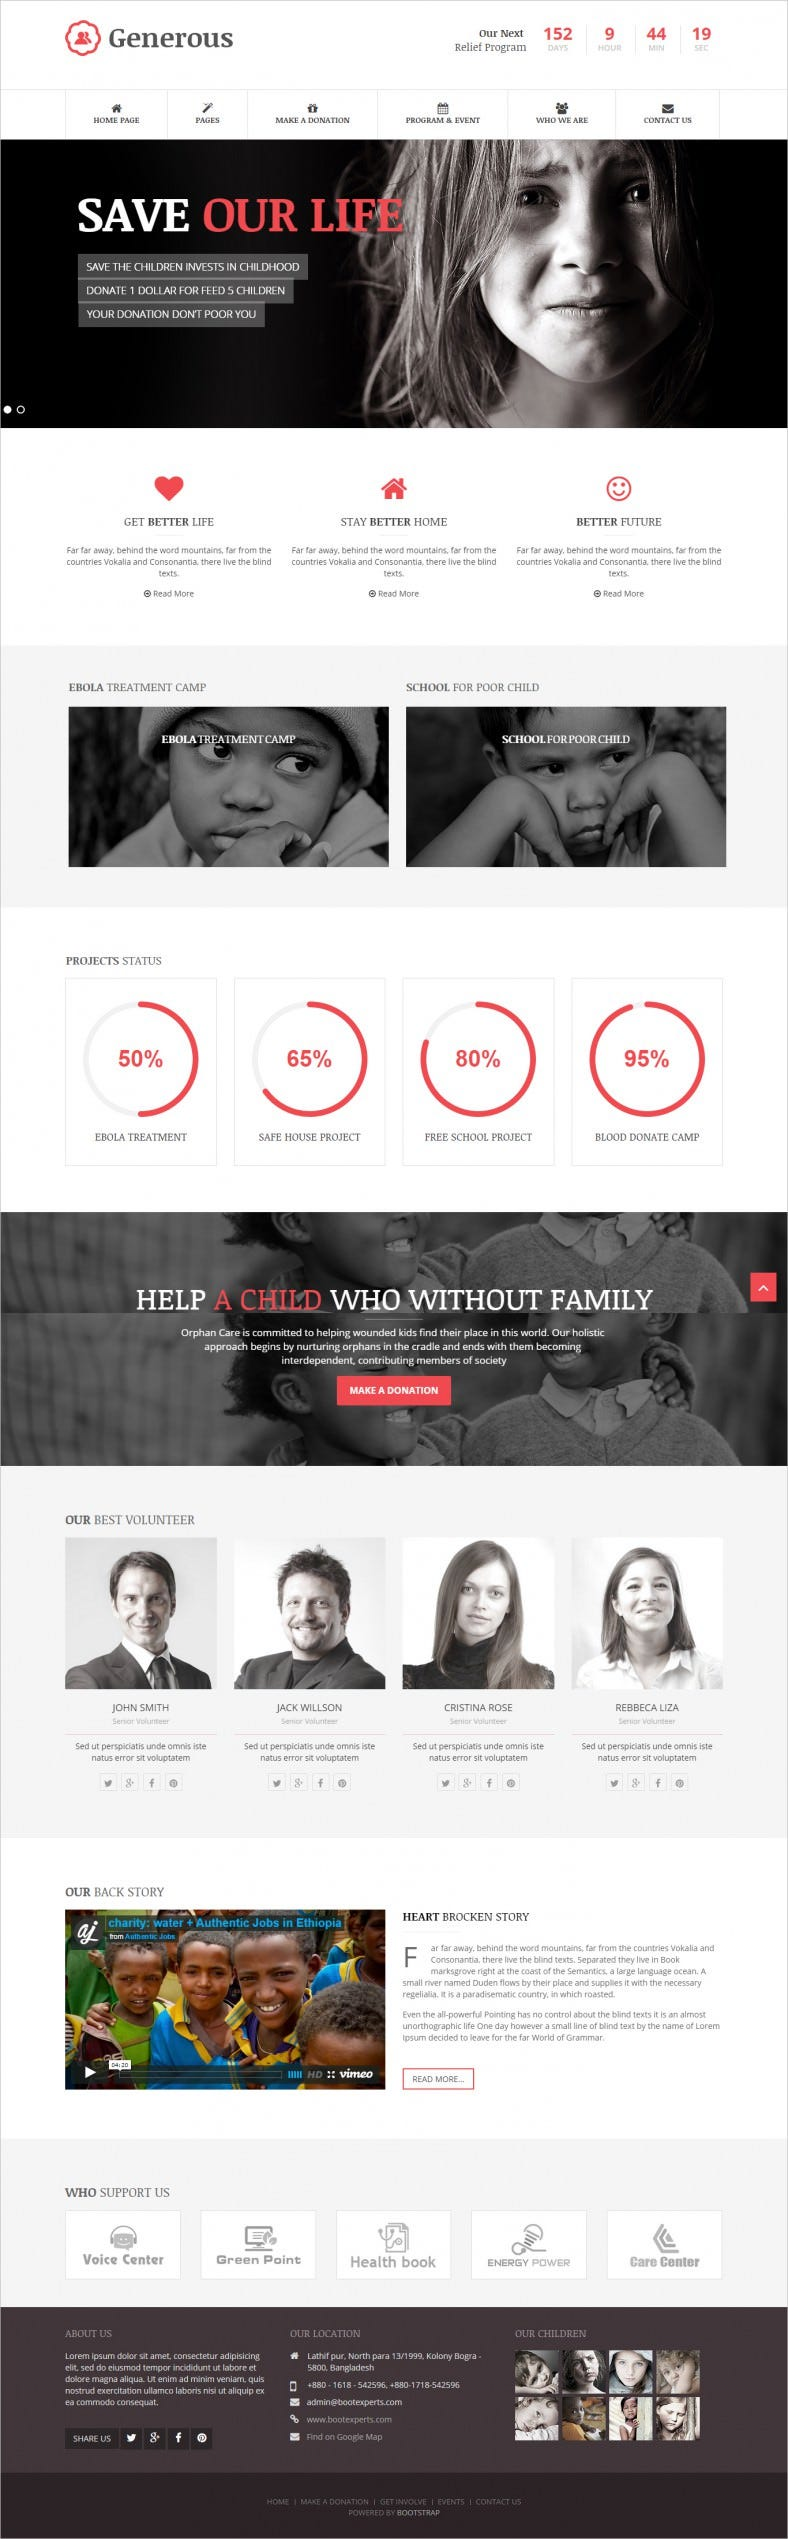 responsive charity html template 788x2539